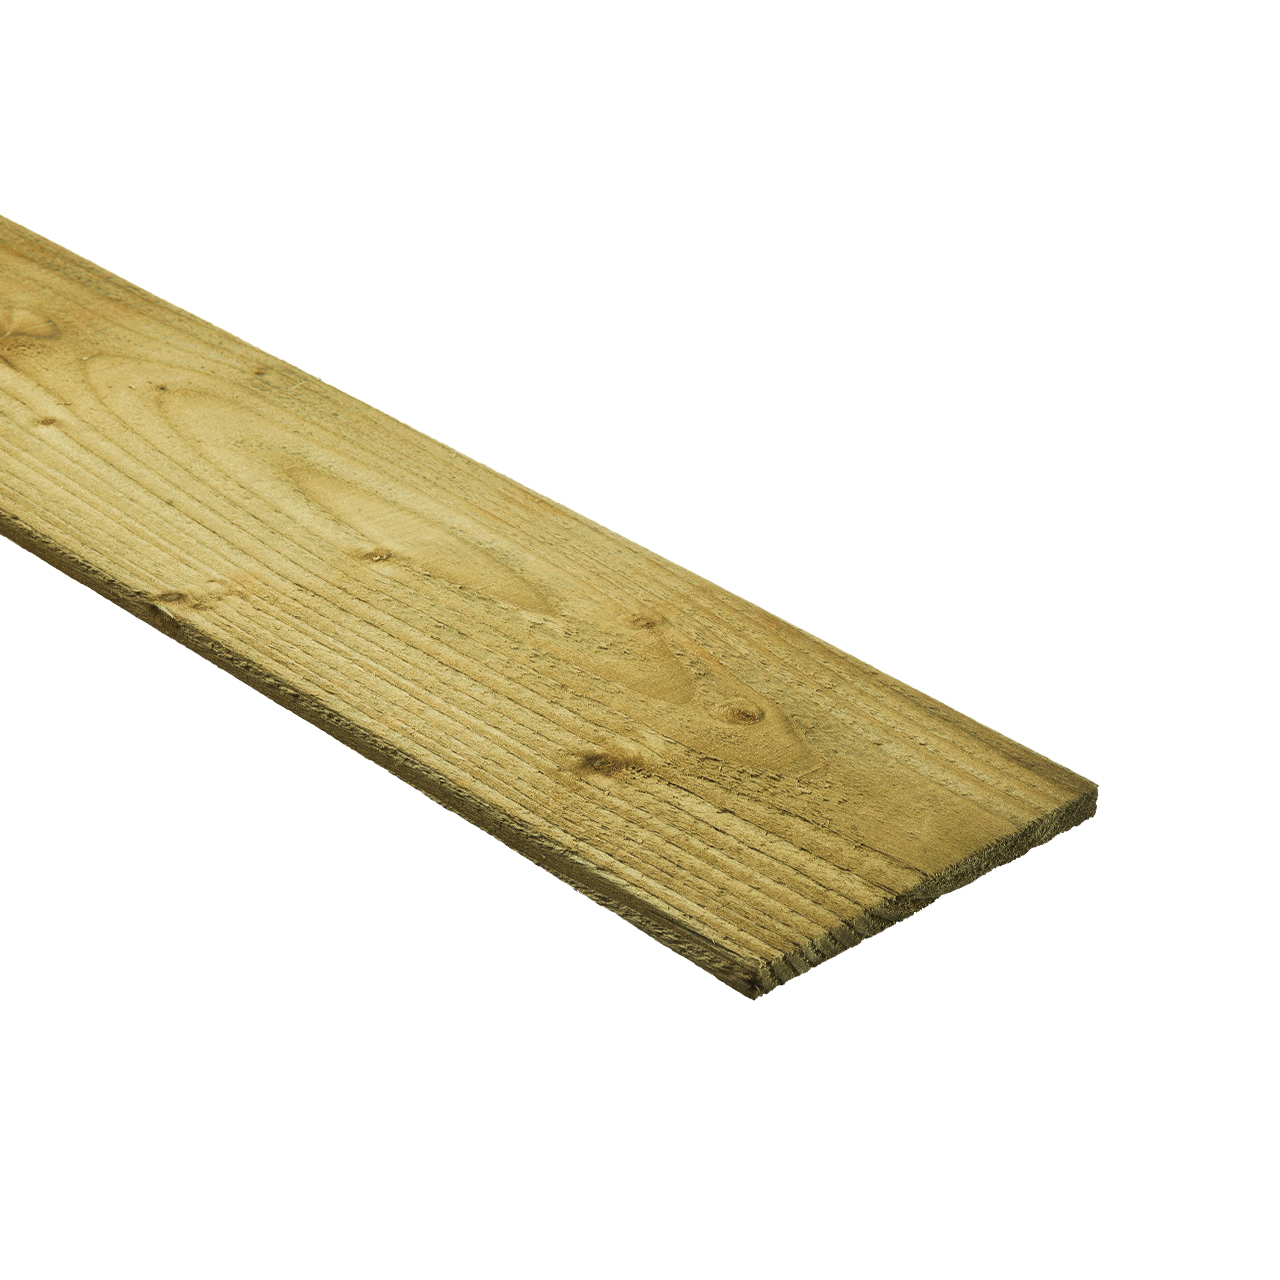 Rough Sawn Carcassing Green Treated 16mm x 150mm image 0